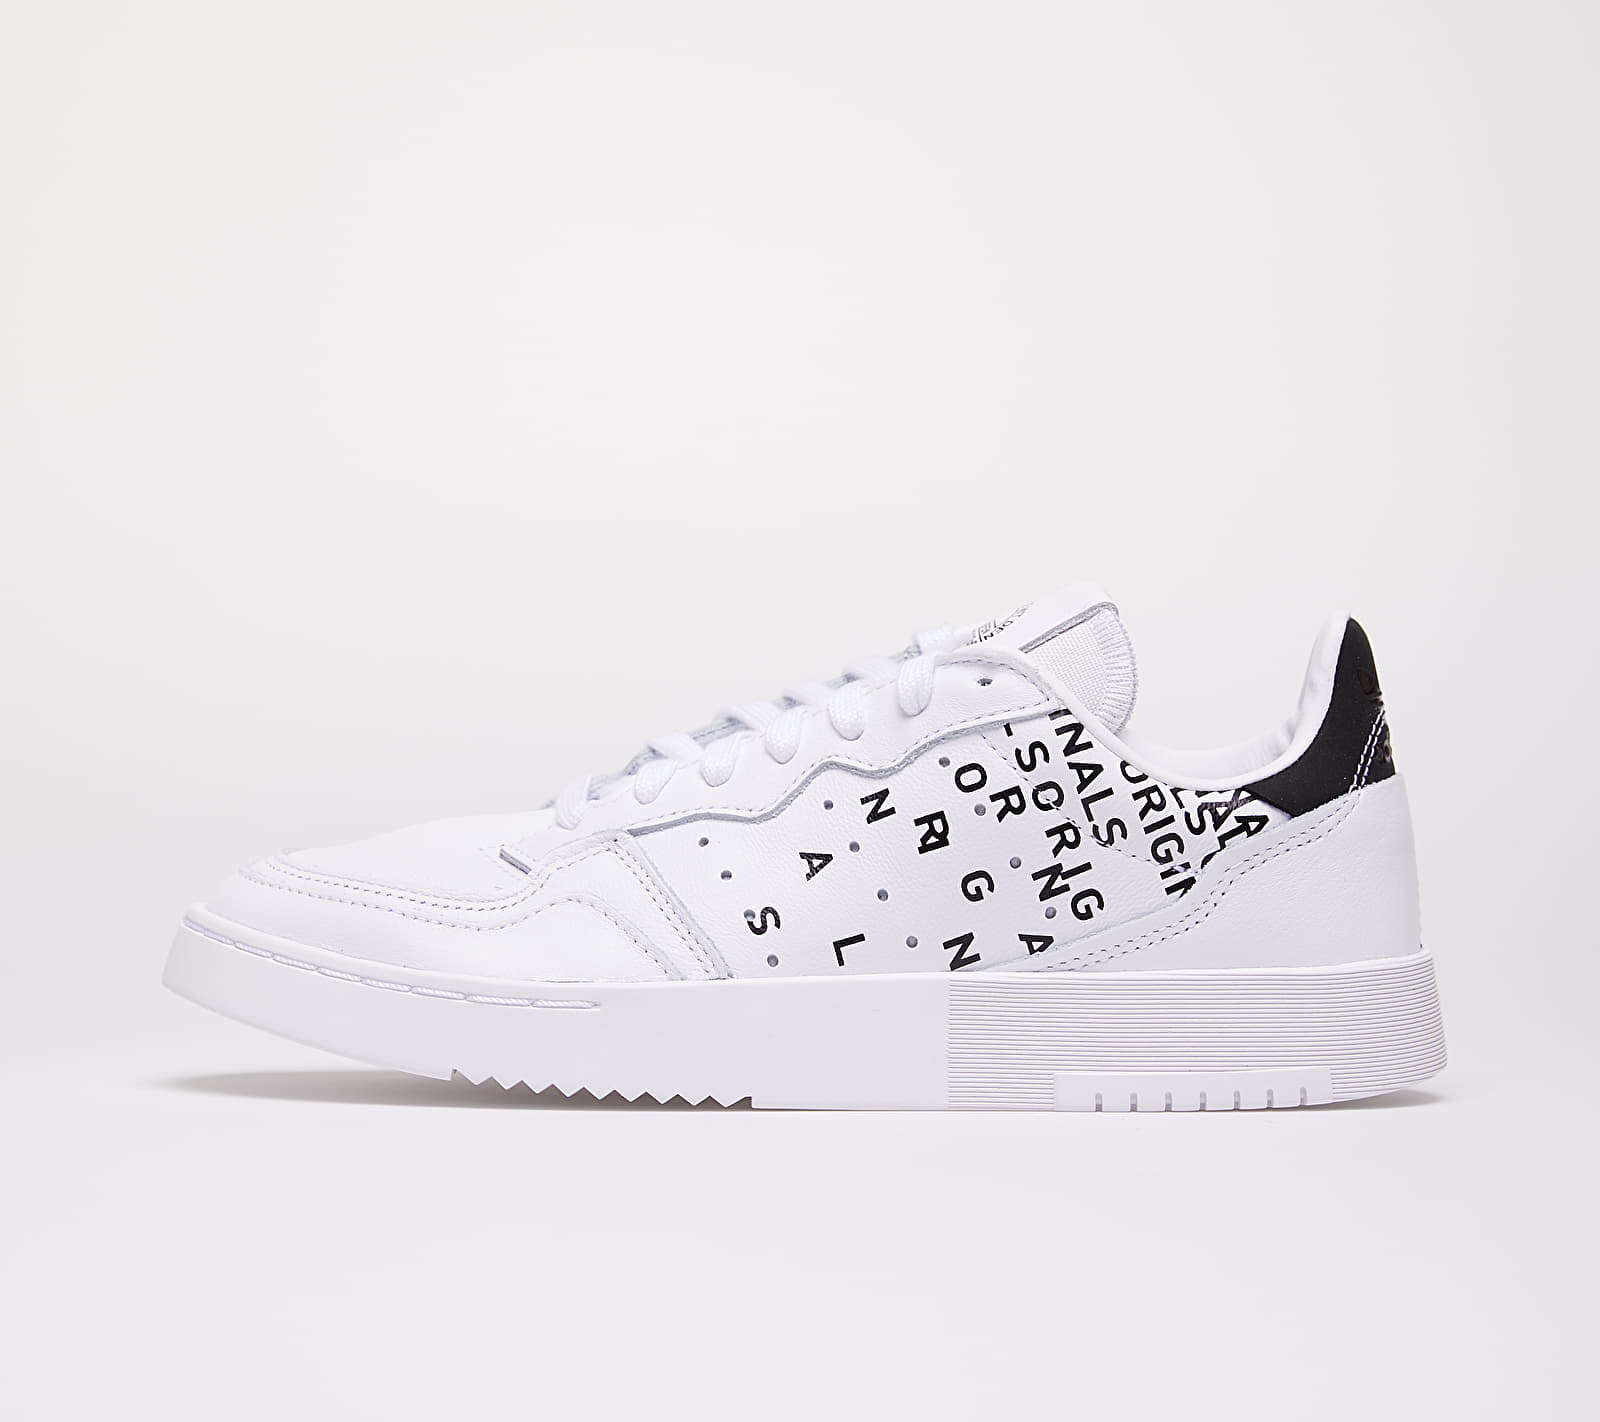 adidas Supercourt W Ftw White/ Ftw White/ Core Black 1